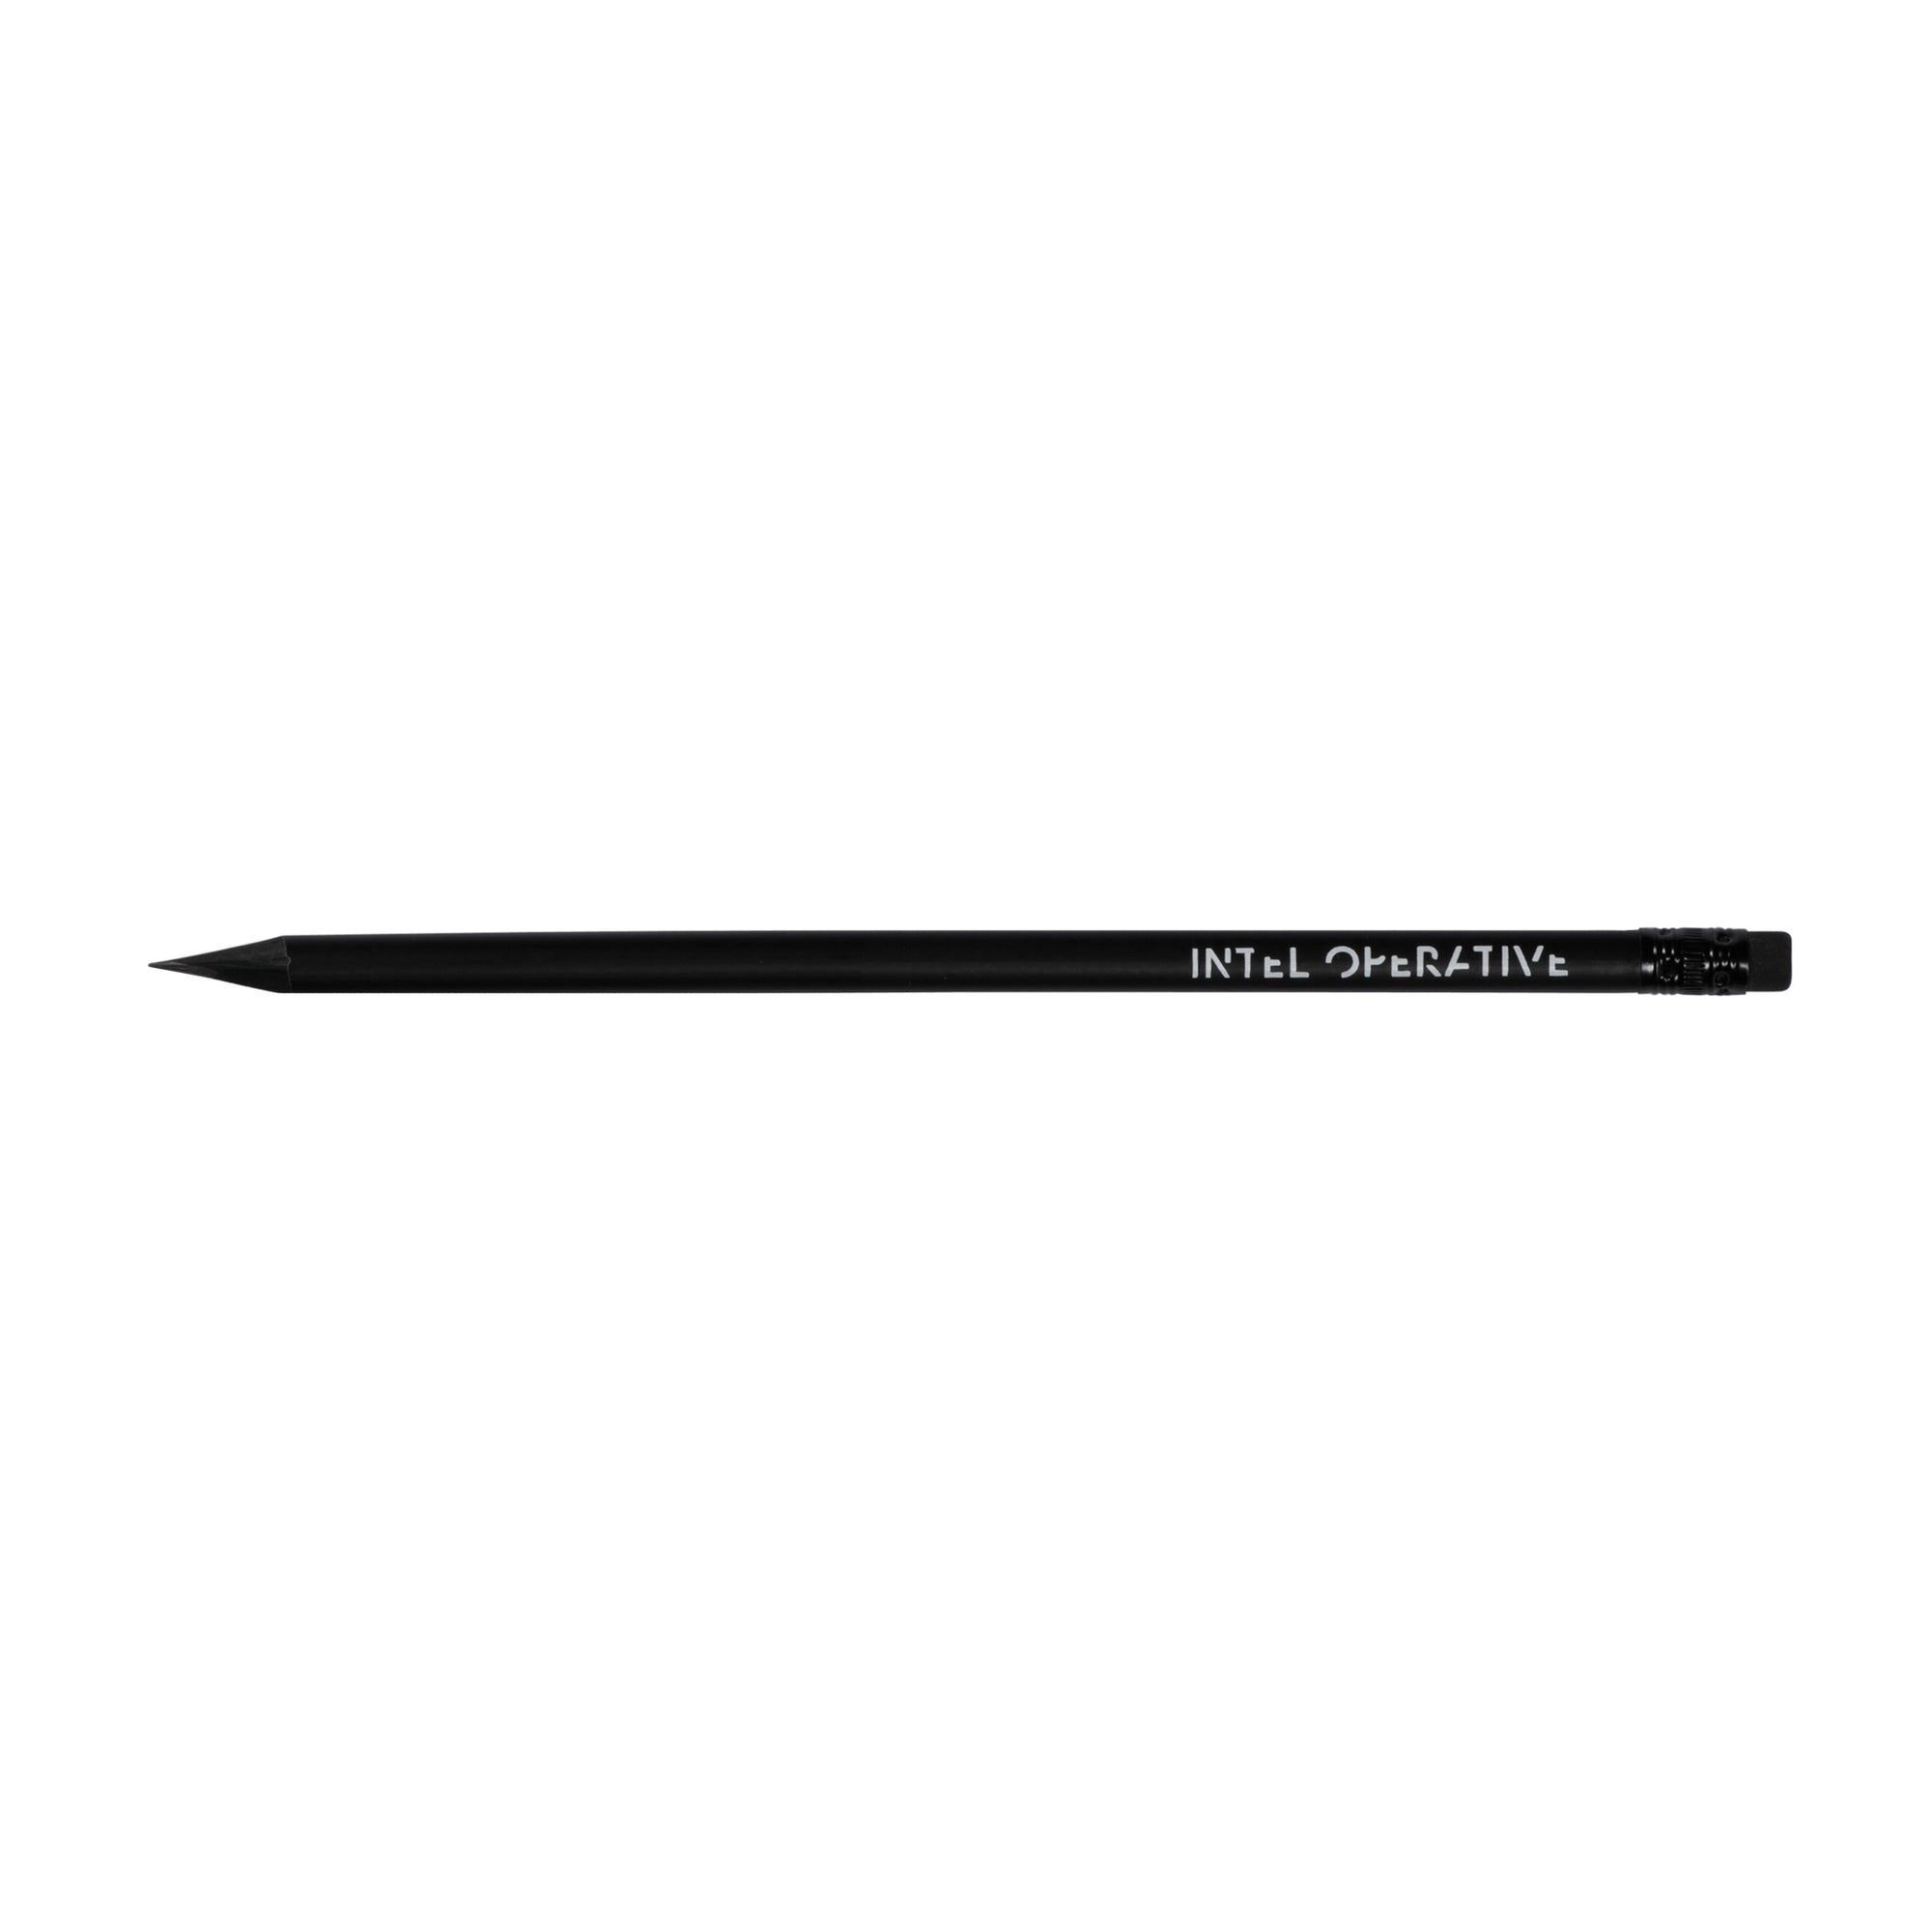 SPYSCAPE Intel Operative Pencil -